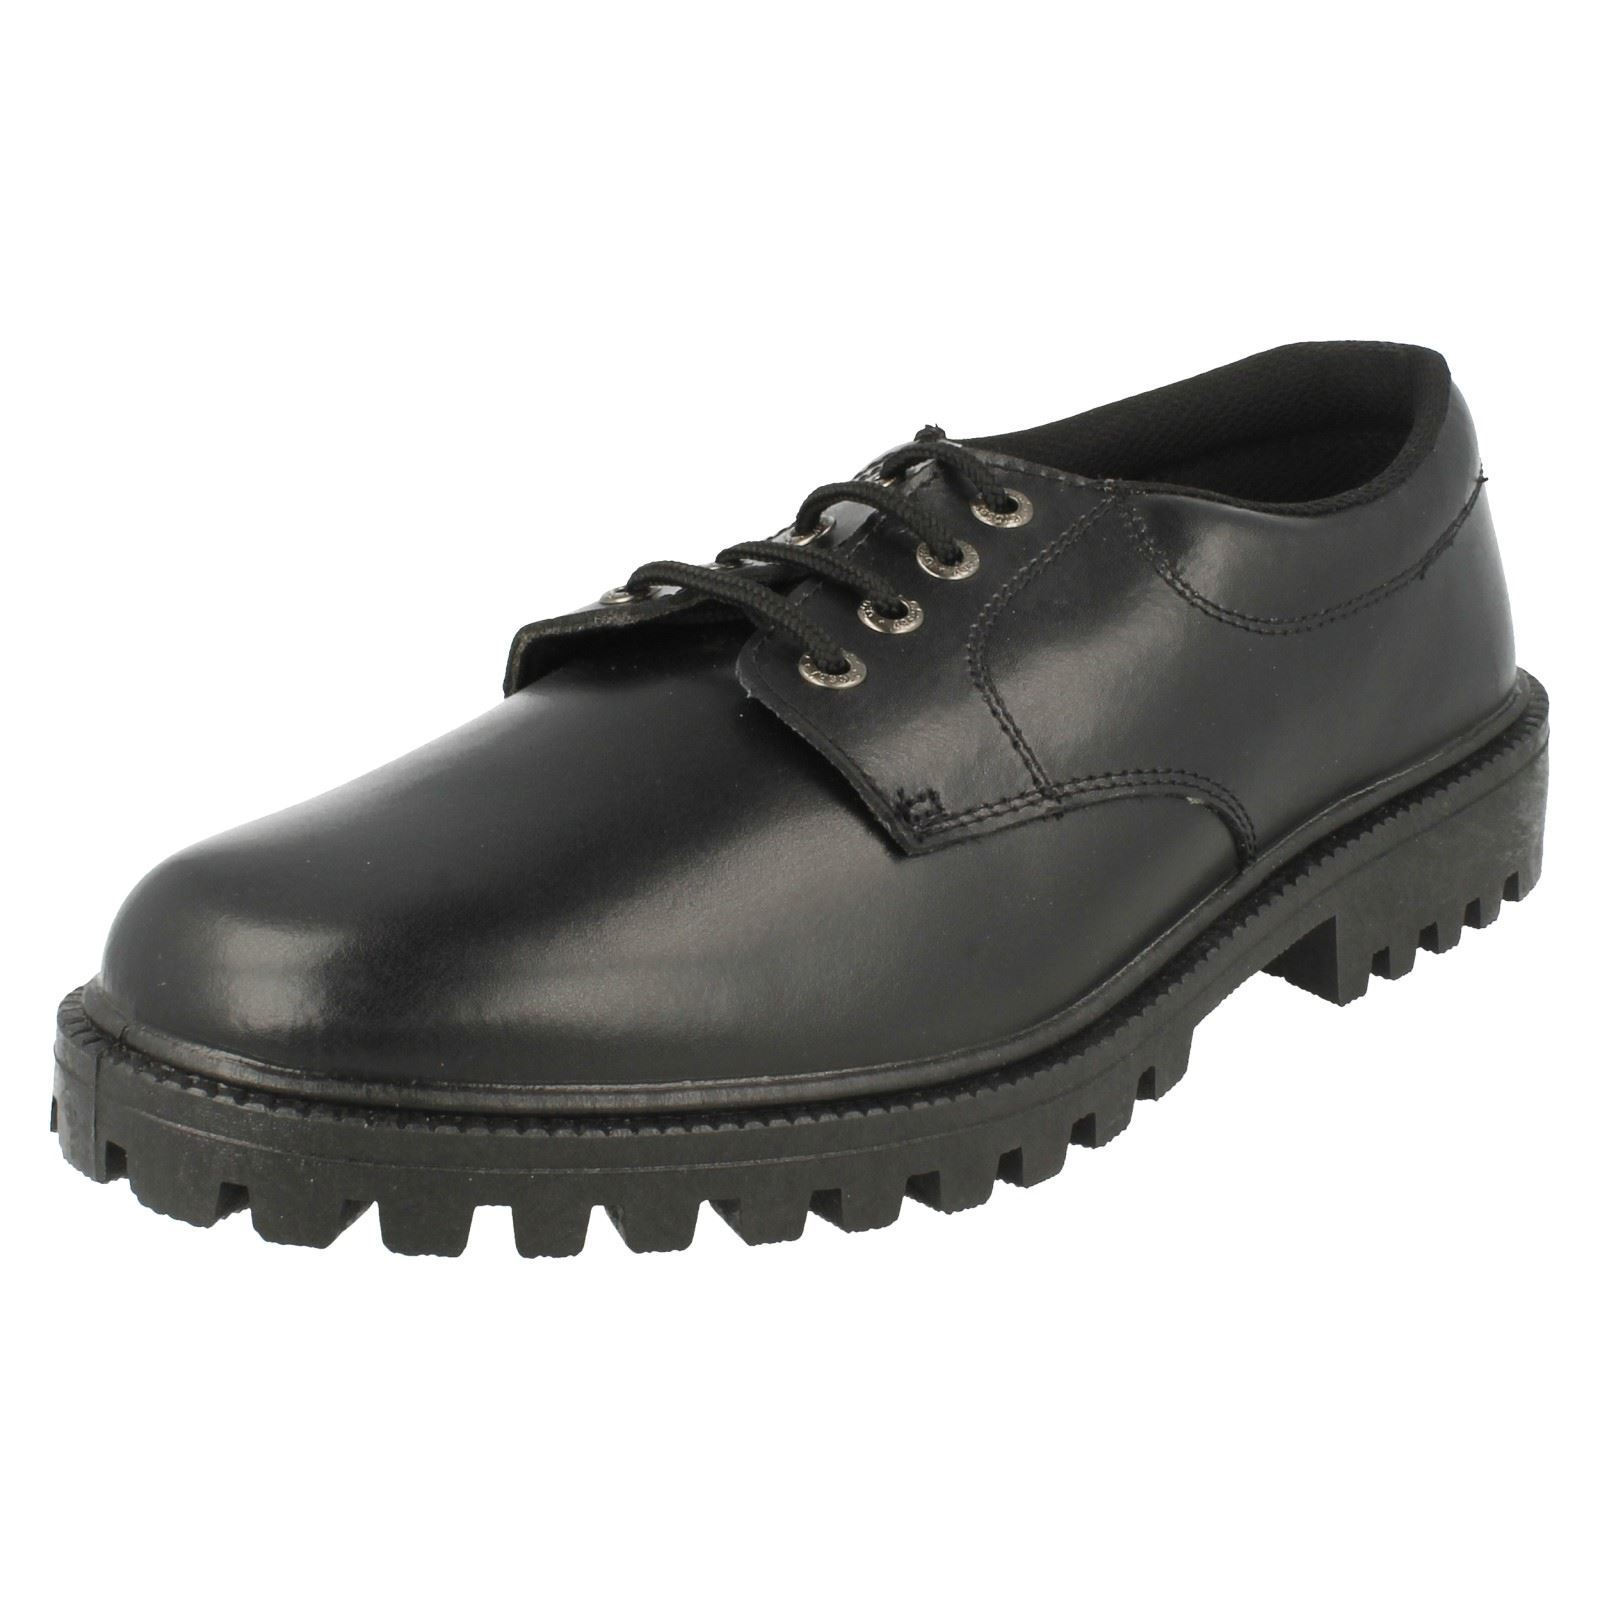 Homme grosby chaussures à lacets style style lacets 190583-w c3e6b1